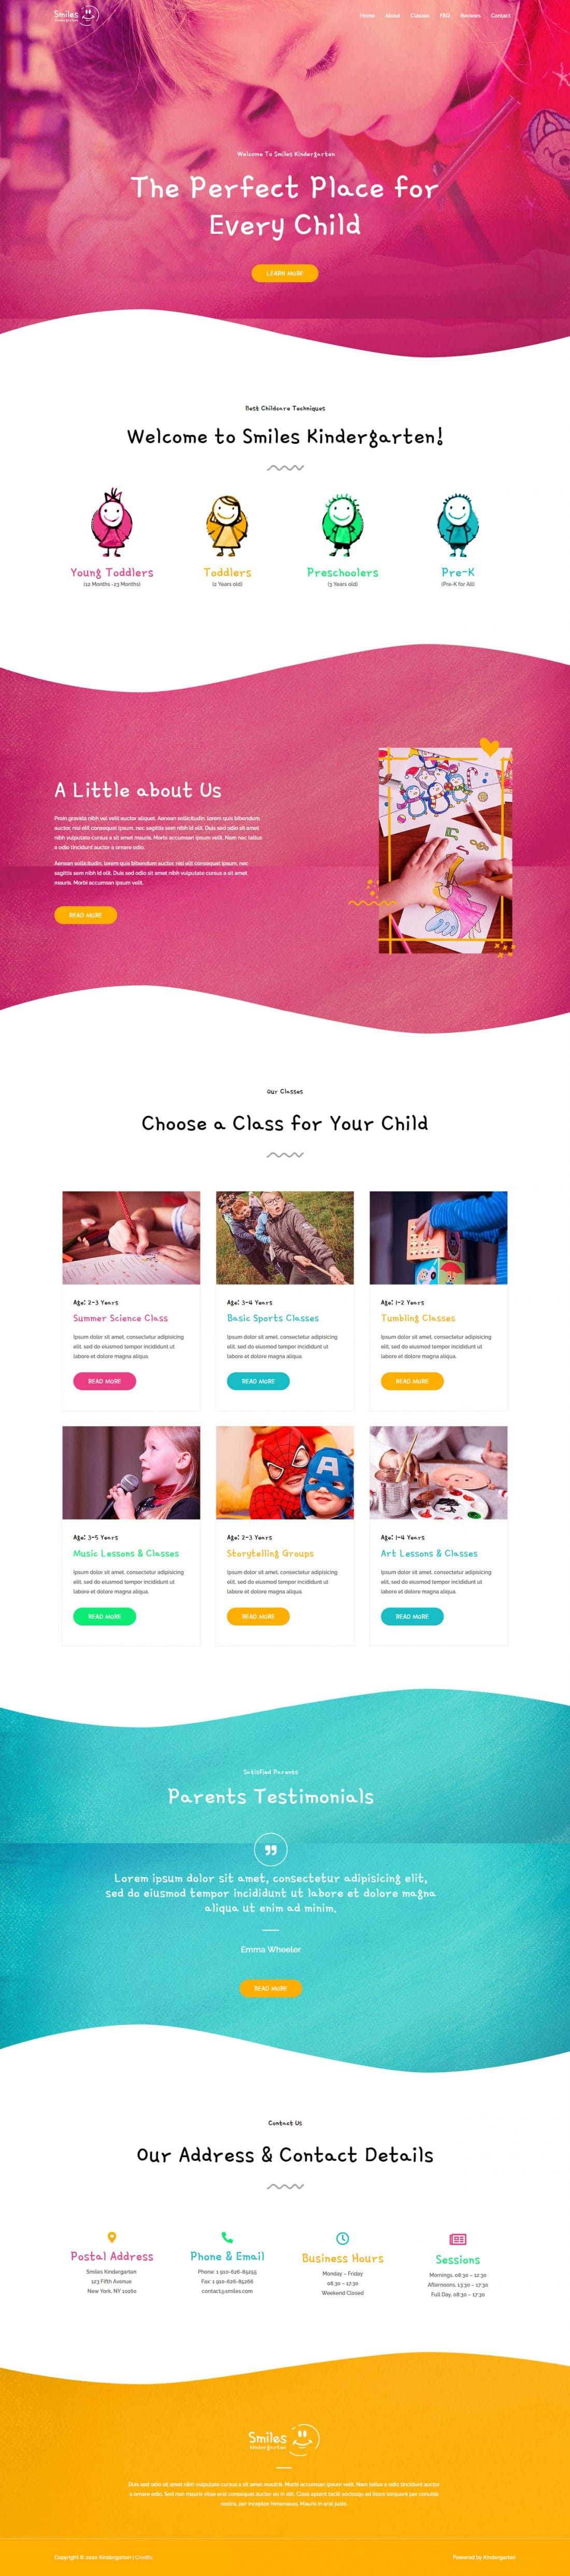 Fagowi.com Website Design Templates For Kindergarten Day Care - Home Page Image